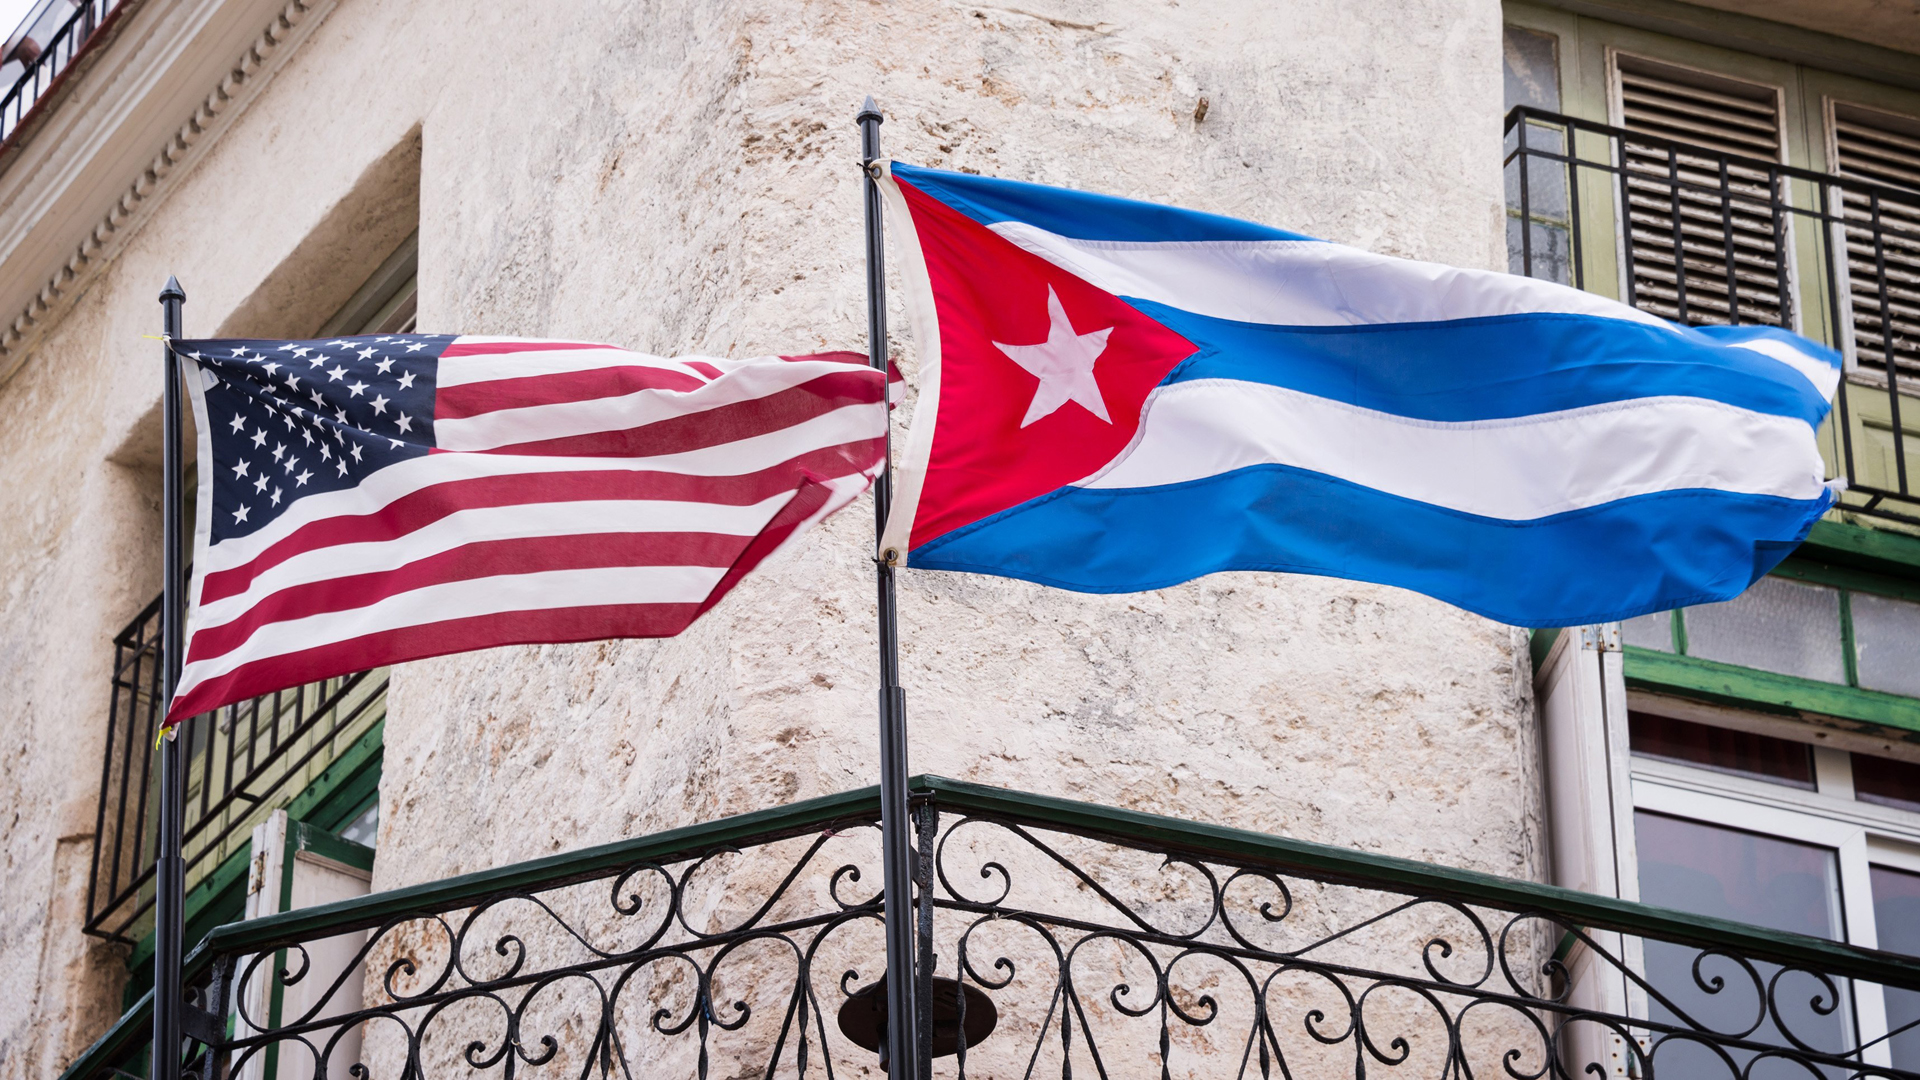 The U.S. announced major new restrictions on American citizens traveling to Cuba. (Credit: Shutterstock)